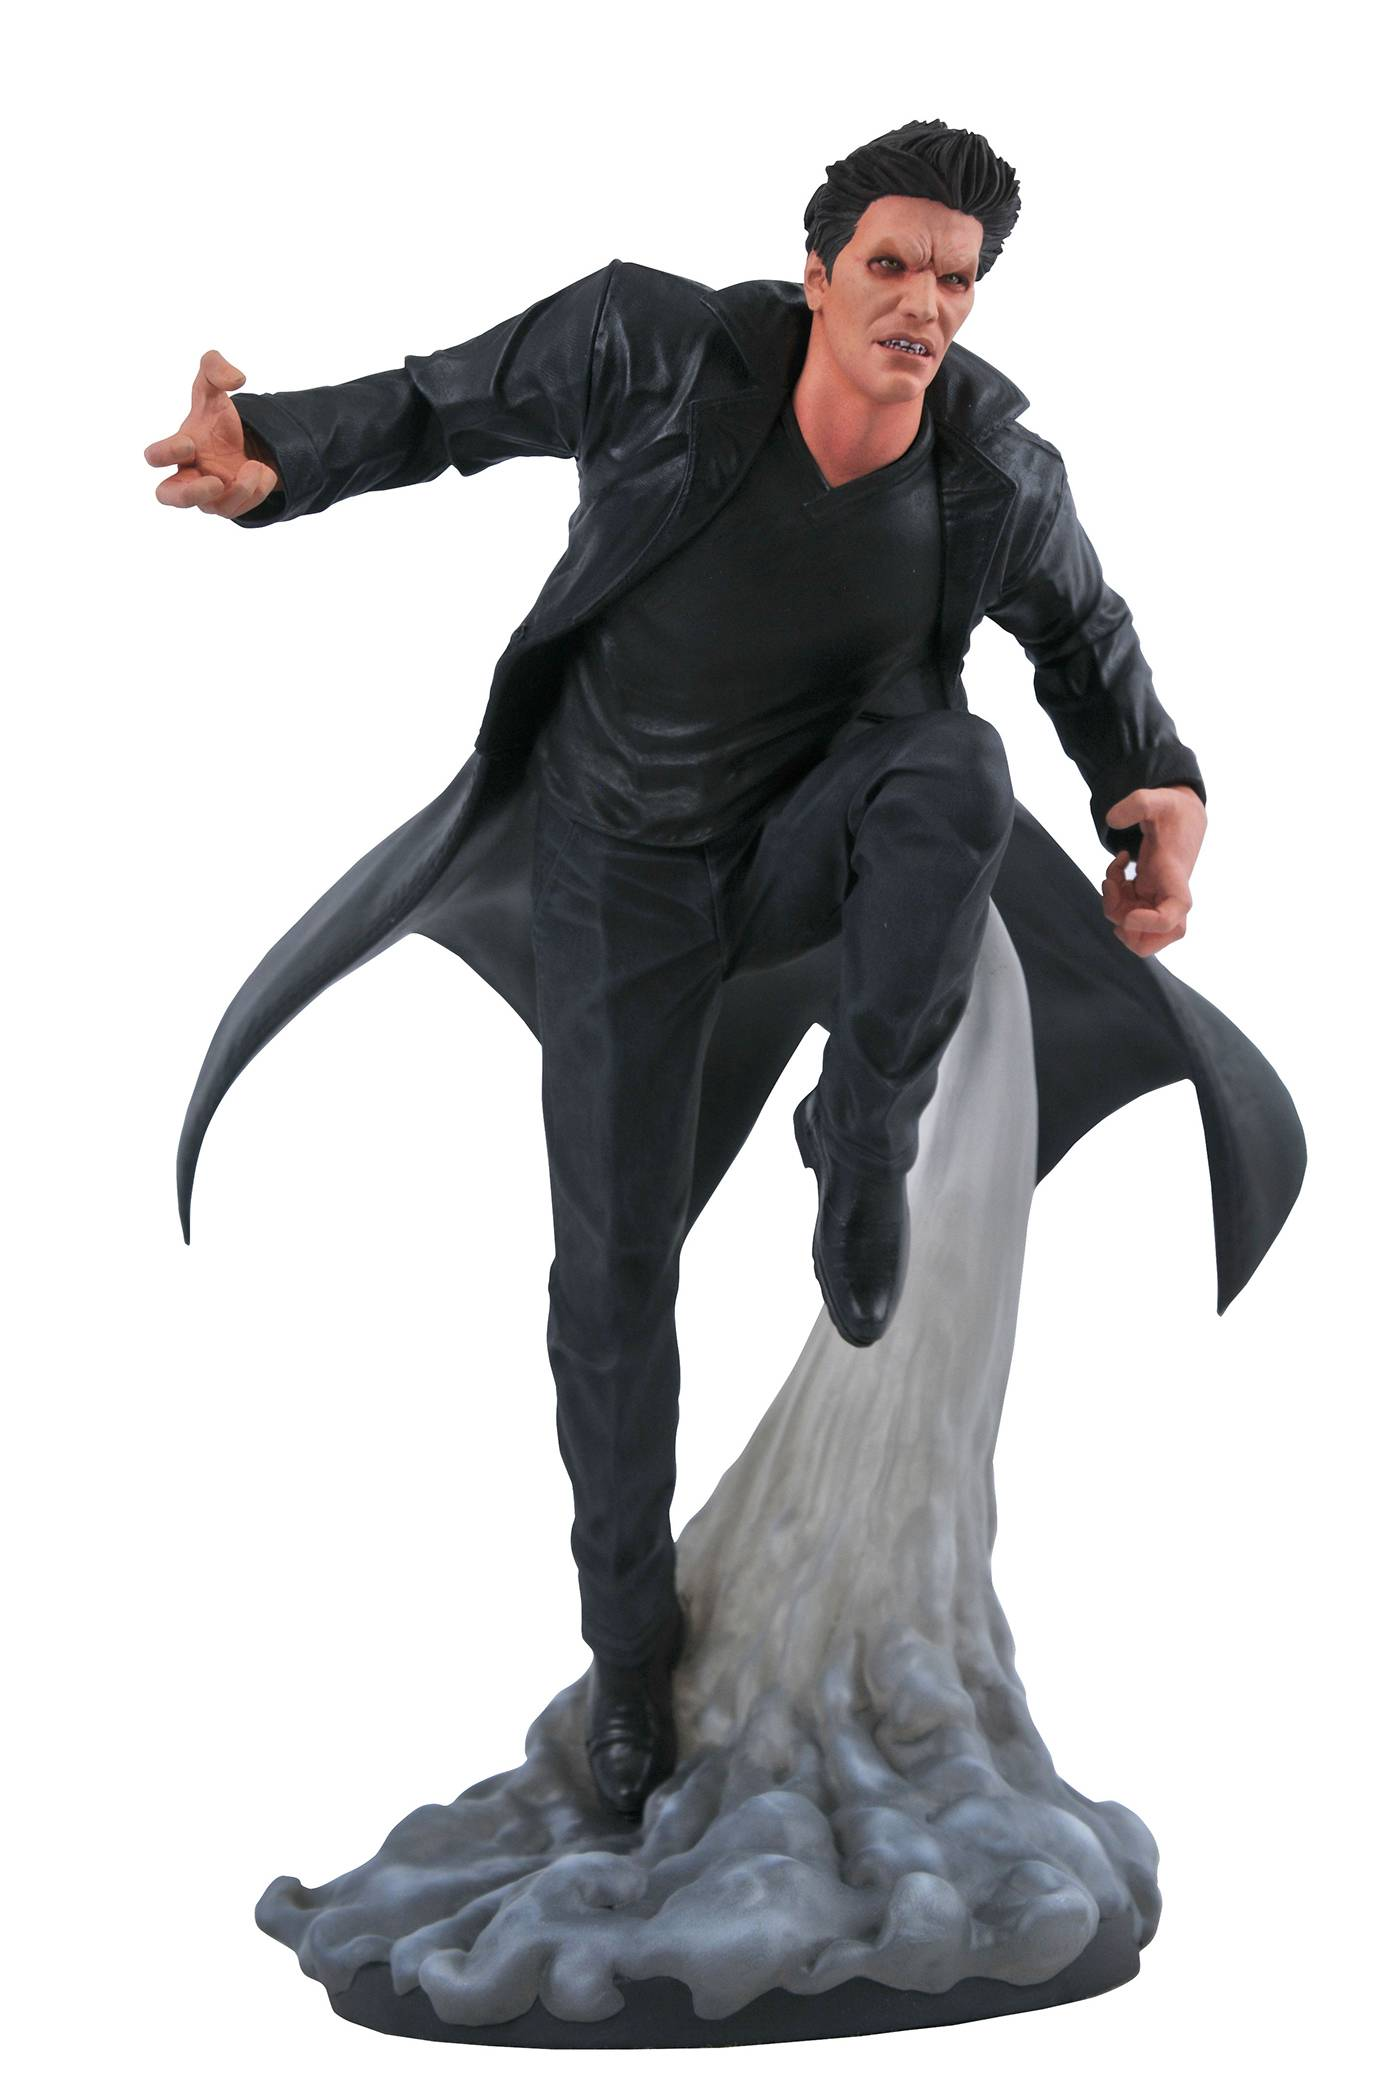 BUFFY THE VAMPIRE SLAYER GALLERY VAMPIRE ANGEL PVC STATUE